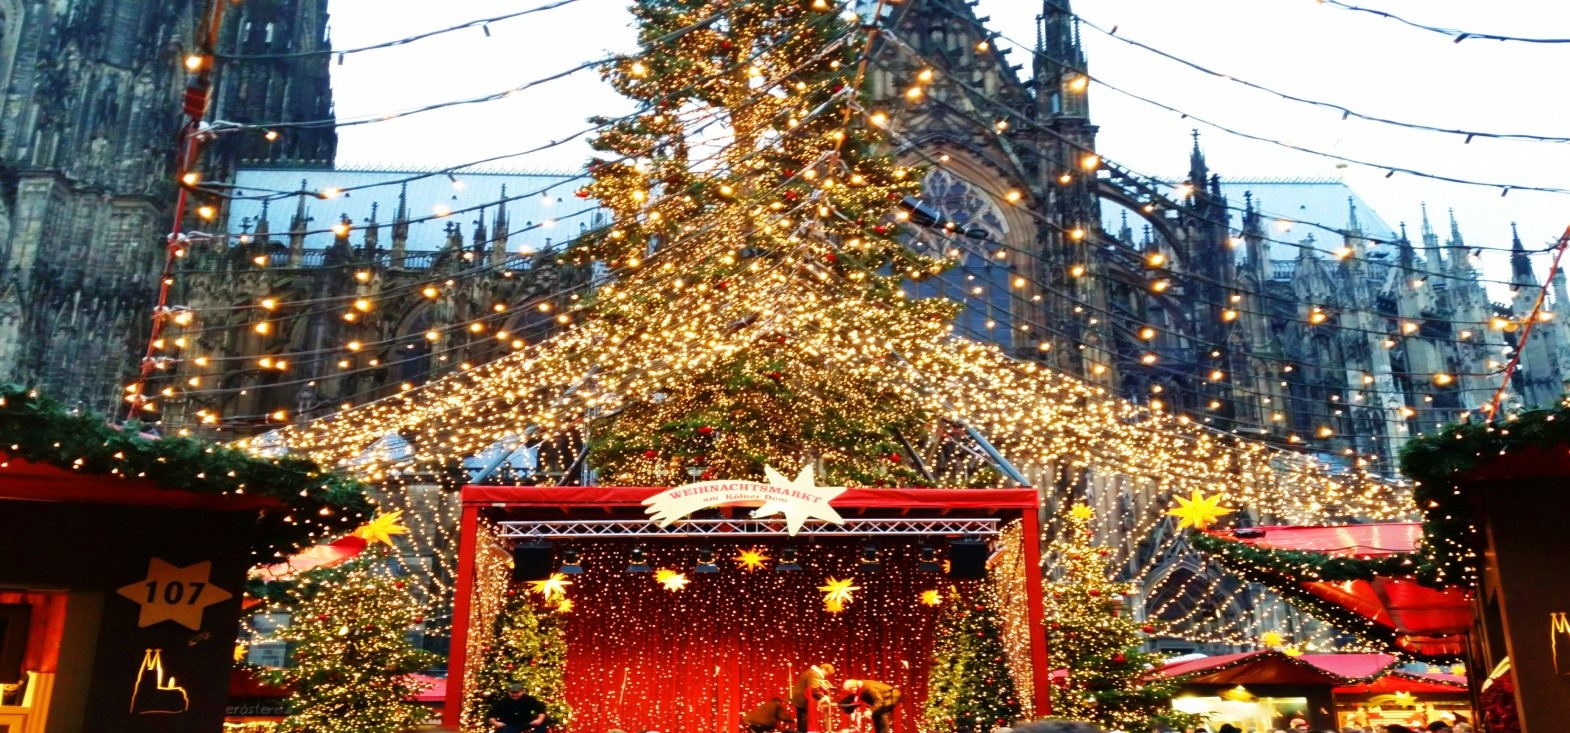 Europe\'s 5 Best Christmas Markets: Travel bloggers tell all ...